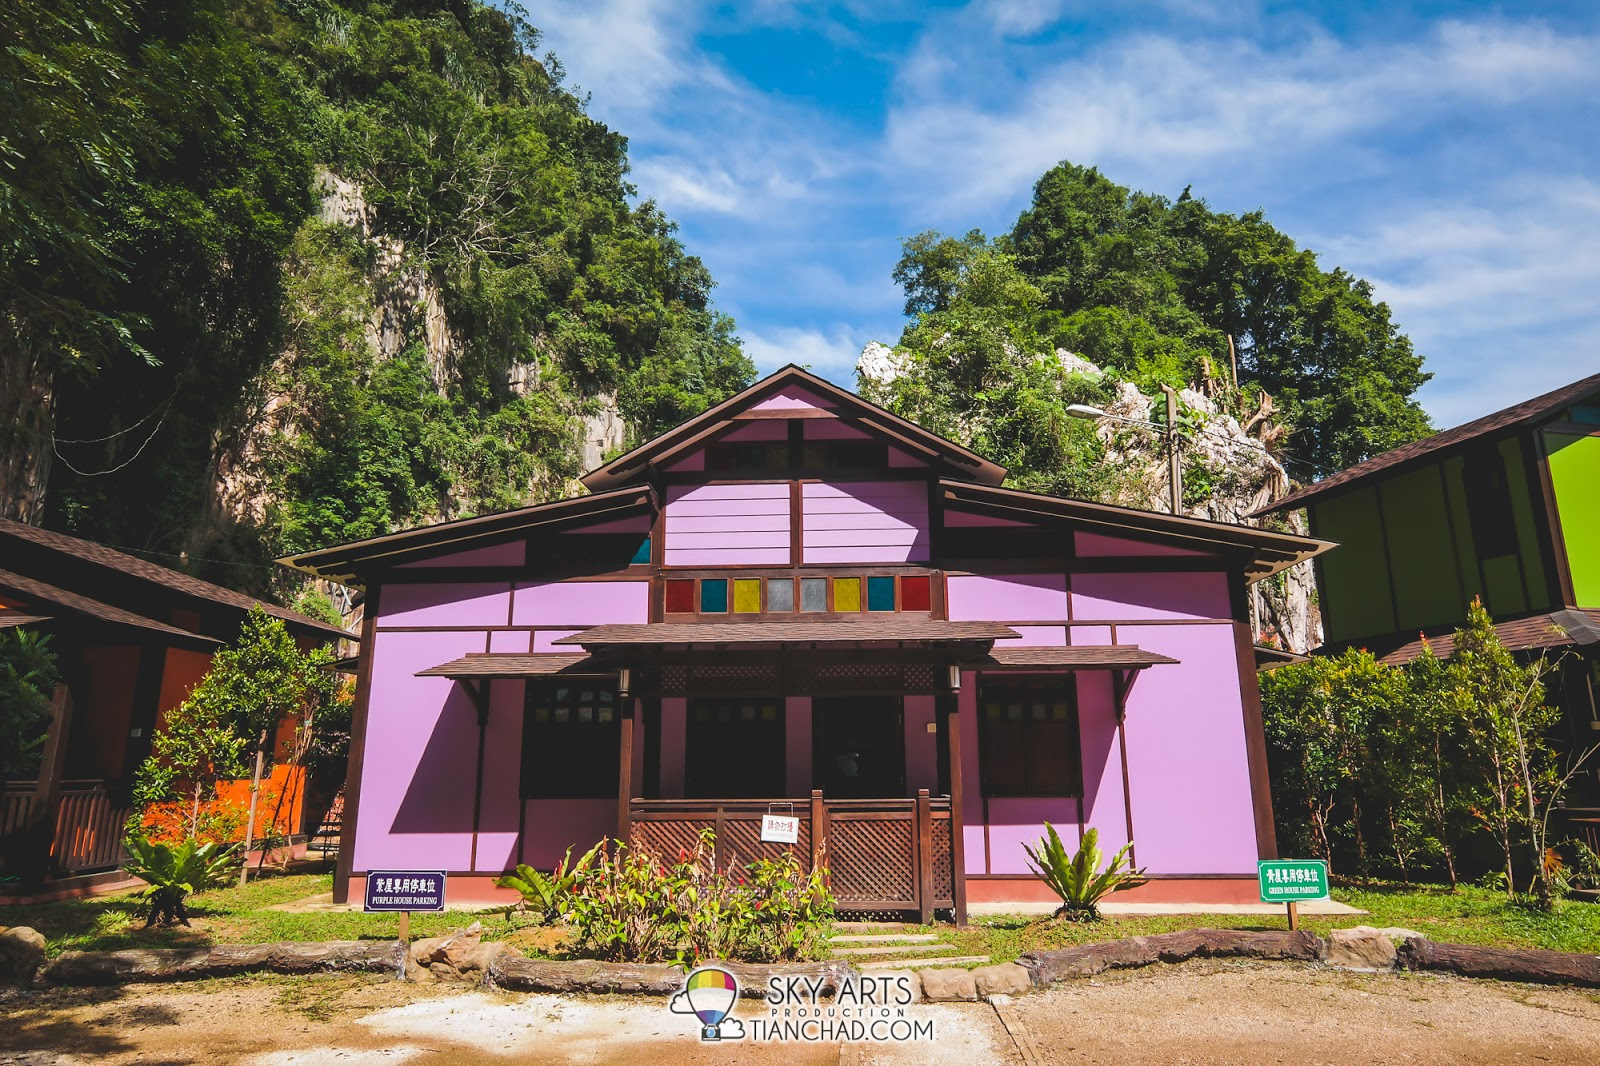 Purple House @ Qing Xin Ling with two rooms and can fit maximum 10 person